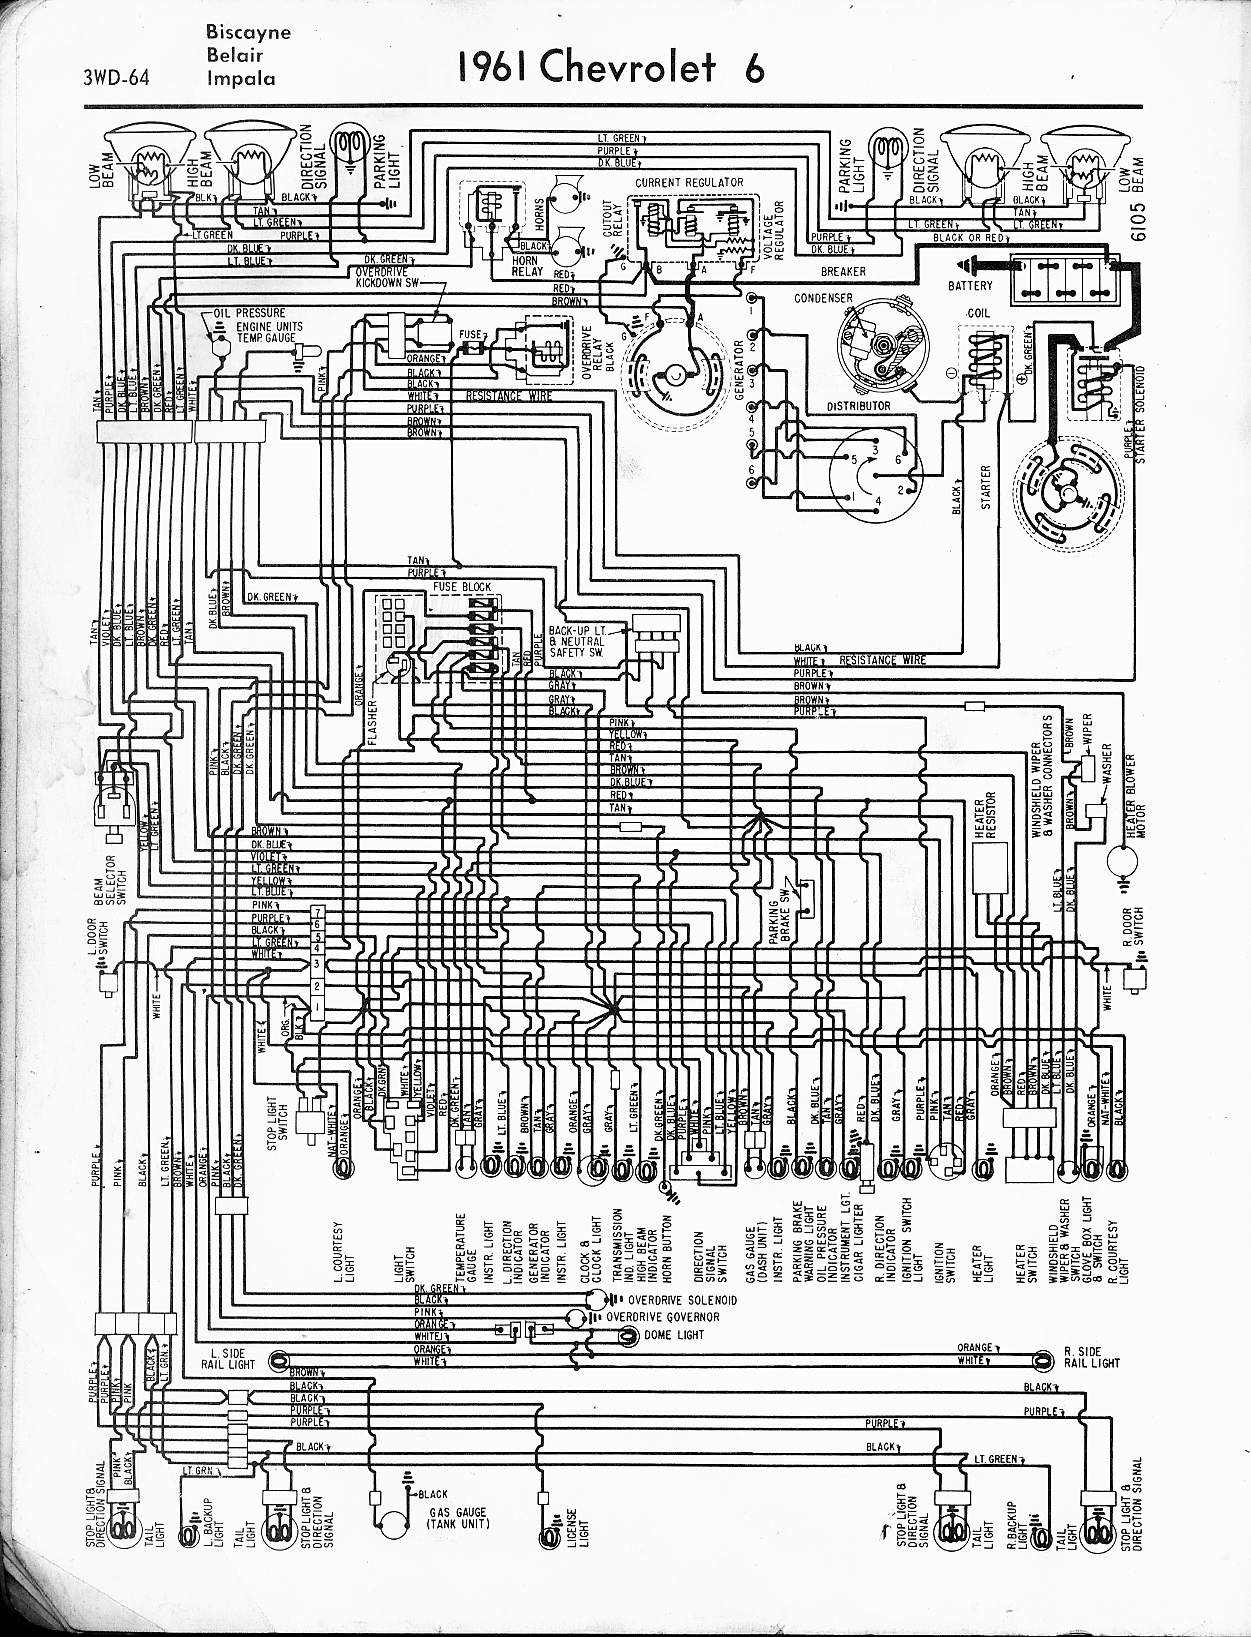 Surprising 65 Chevy C10 Wiring Diagram Wiring Library Wiring 101 Capemaxxcnl